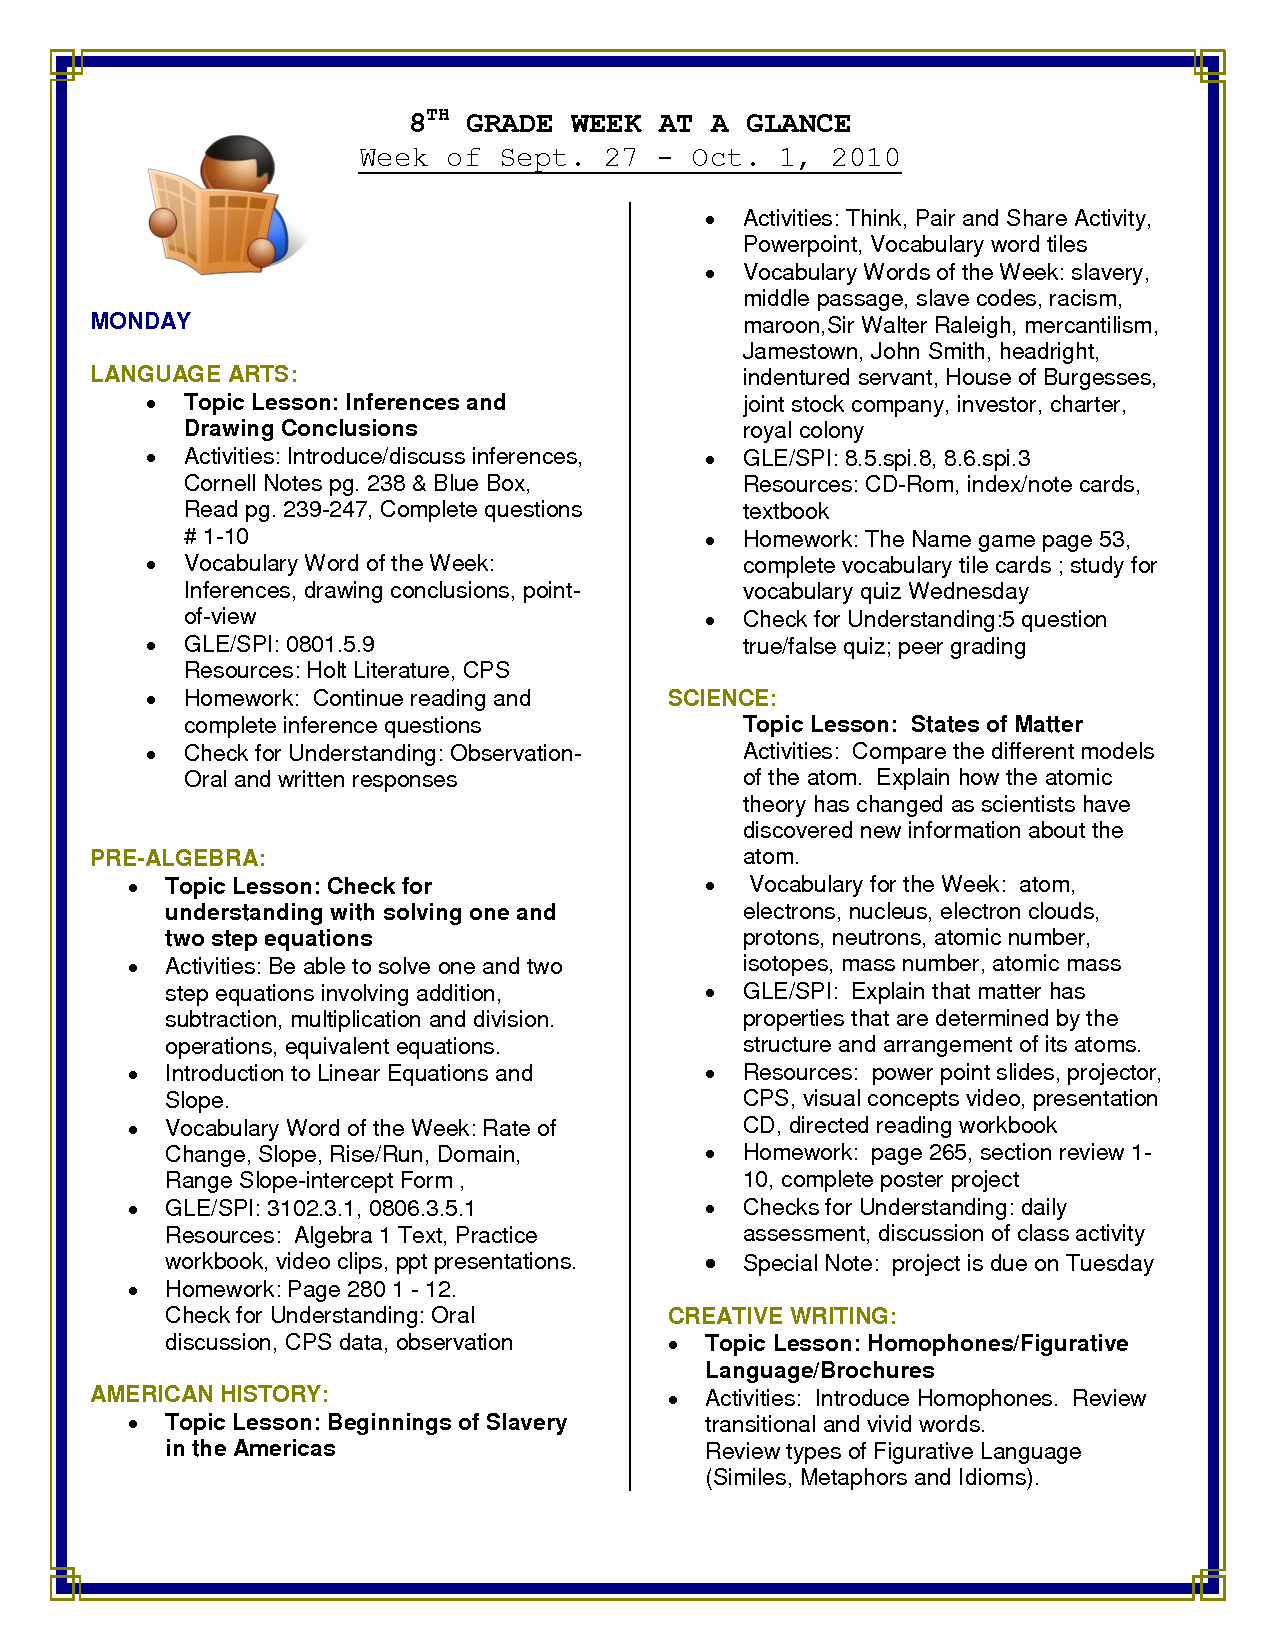 20 Reading Comprehension For 7Th Grade Free Worksheets - Free Printable 7Th Grade Vocabulary Worksheets